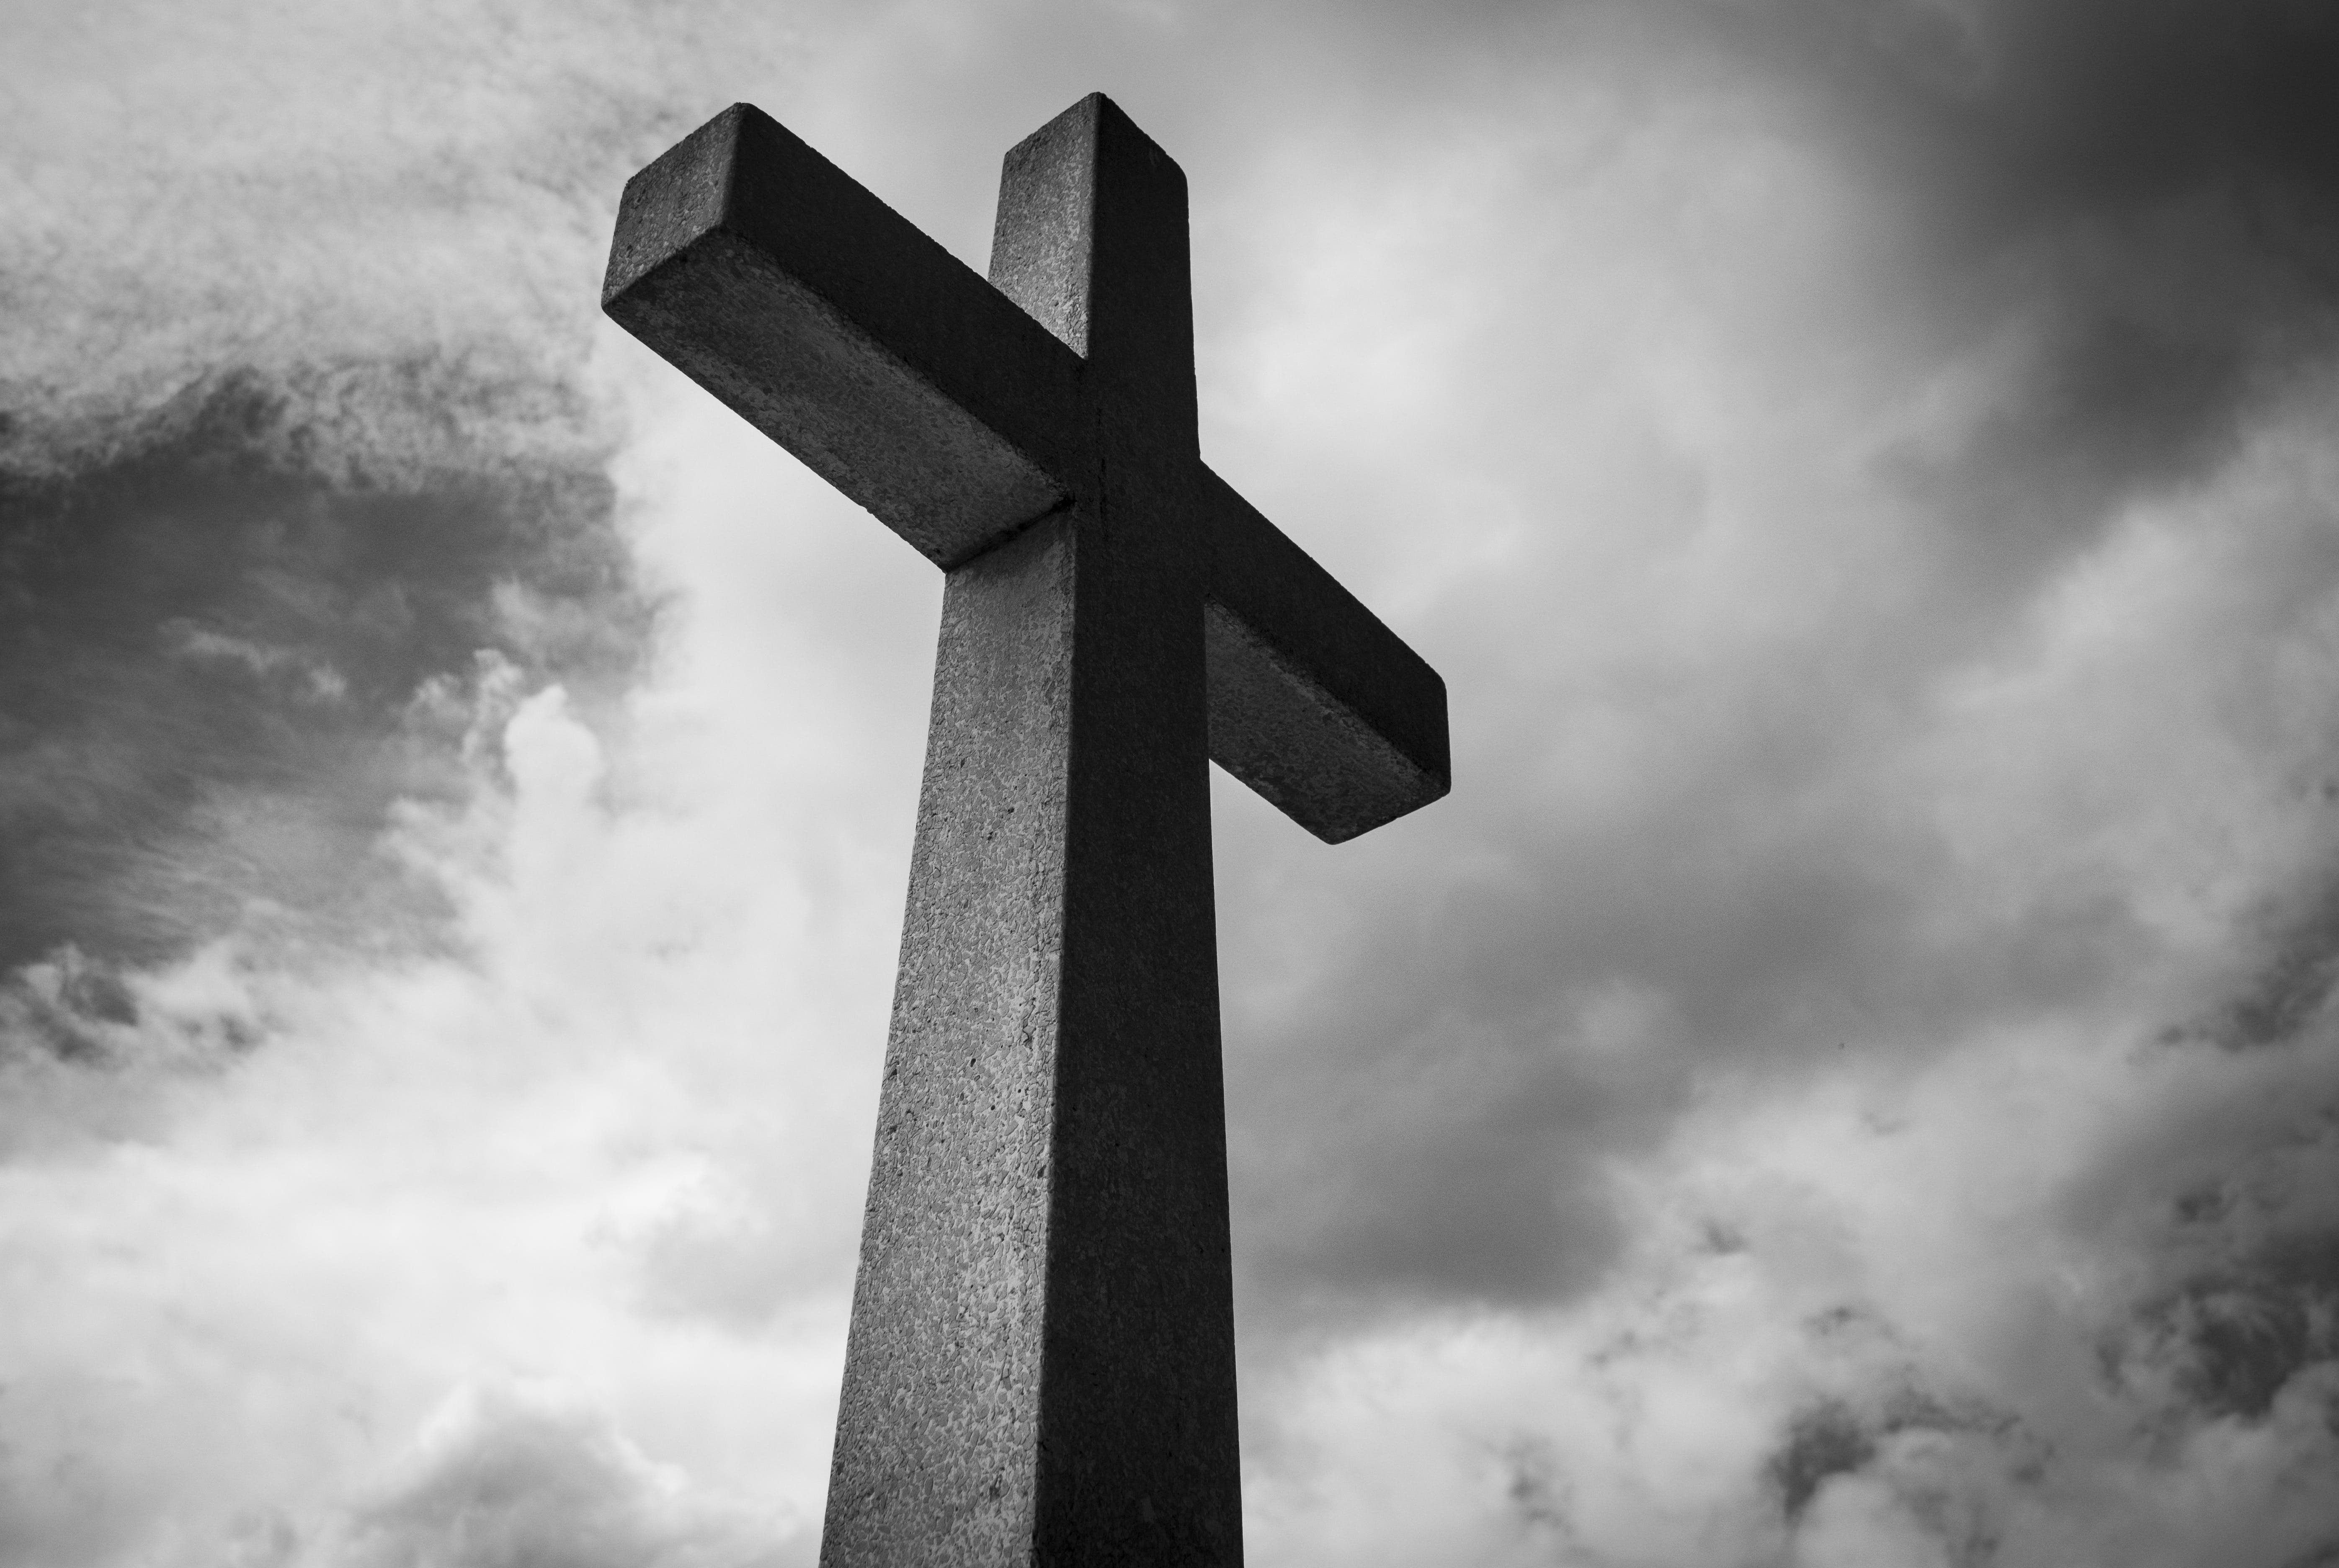 Low Angle Photo of Concrete Cross Under Clouds